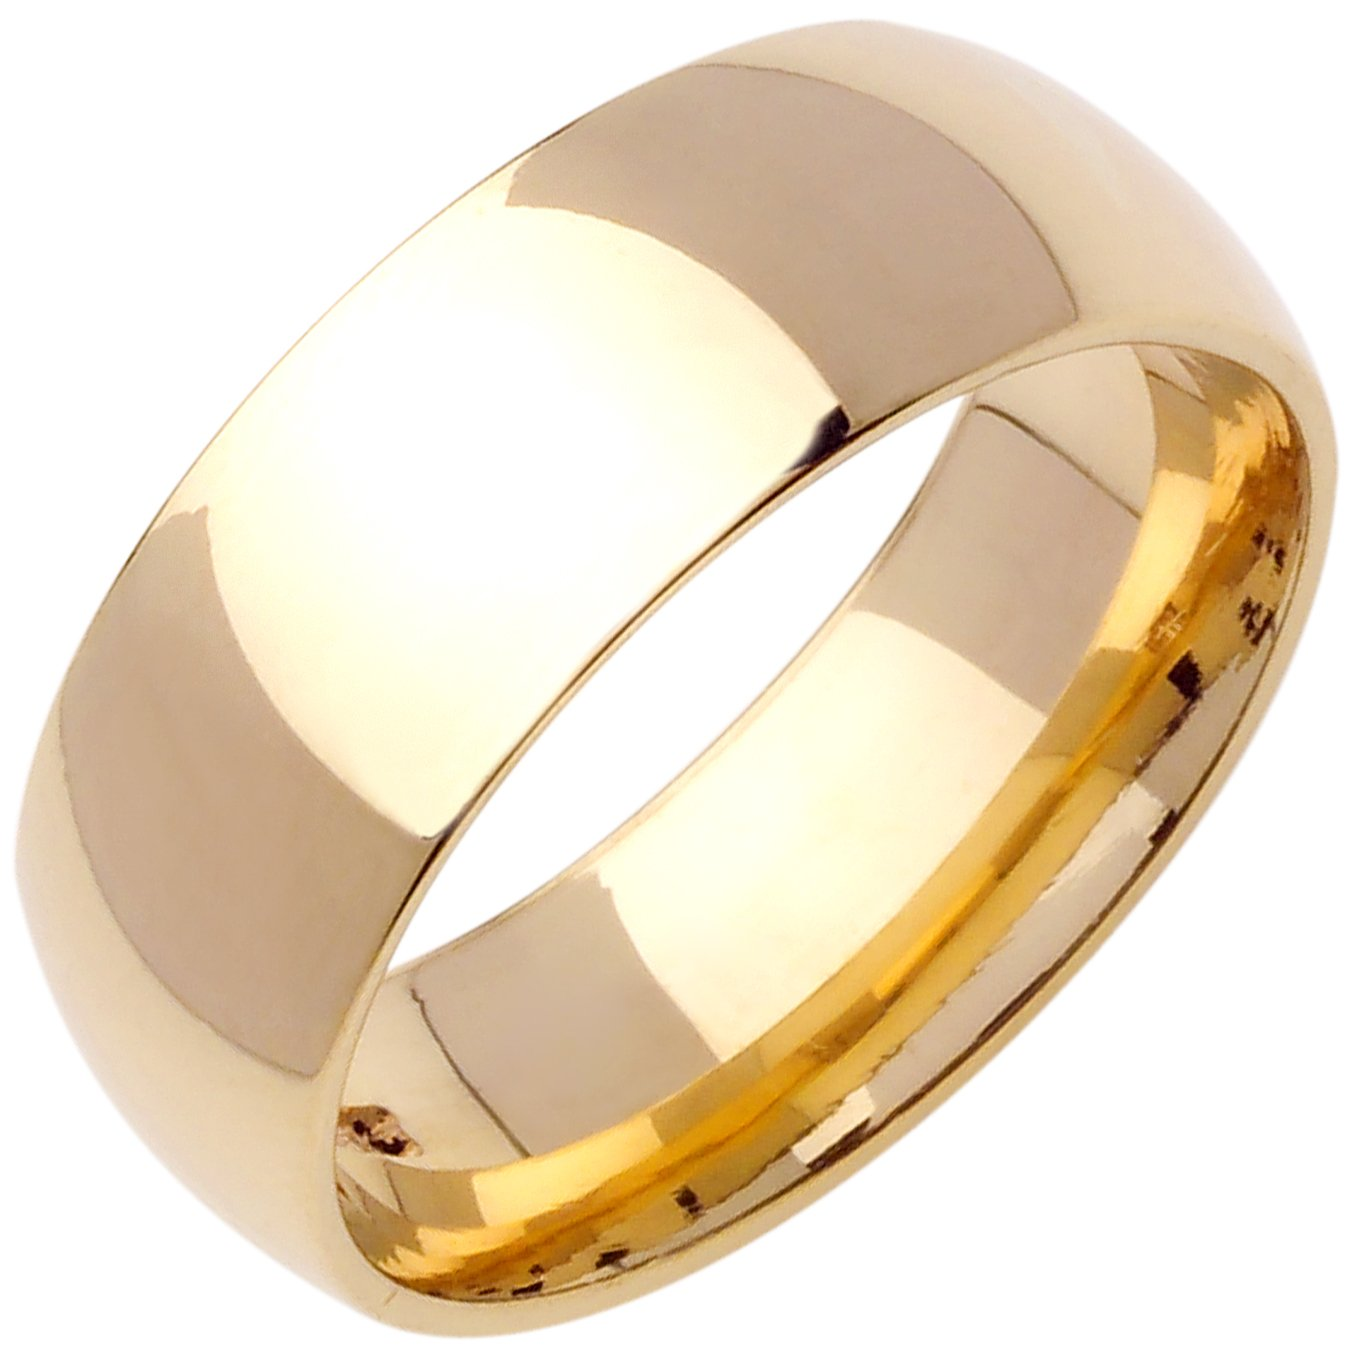 14K Gold Traditional Classic Women's Comfort Fit Wedding Band (10mm) Size-4.5c1